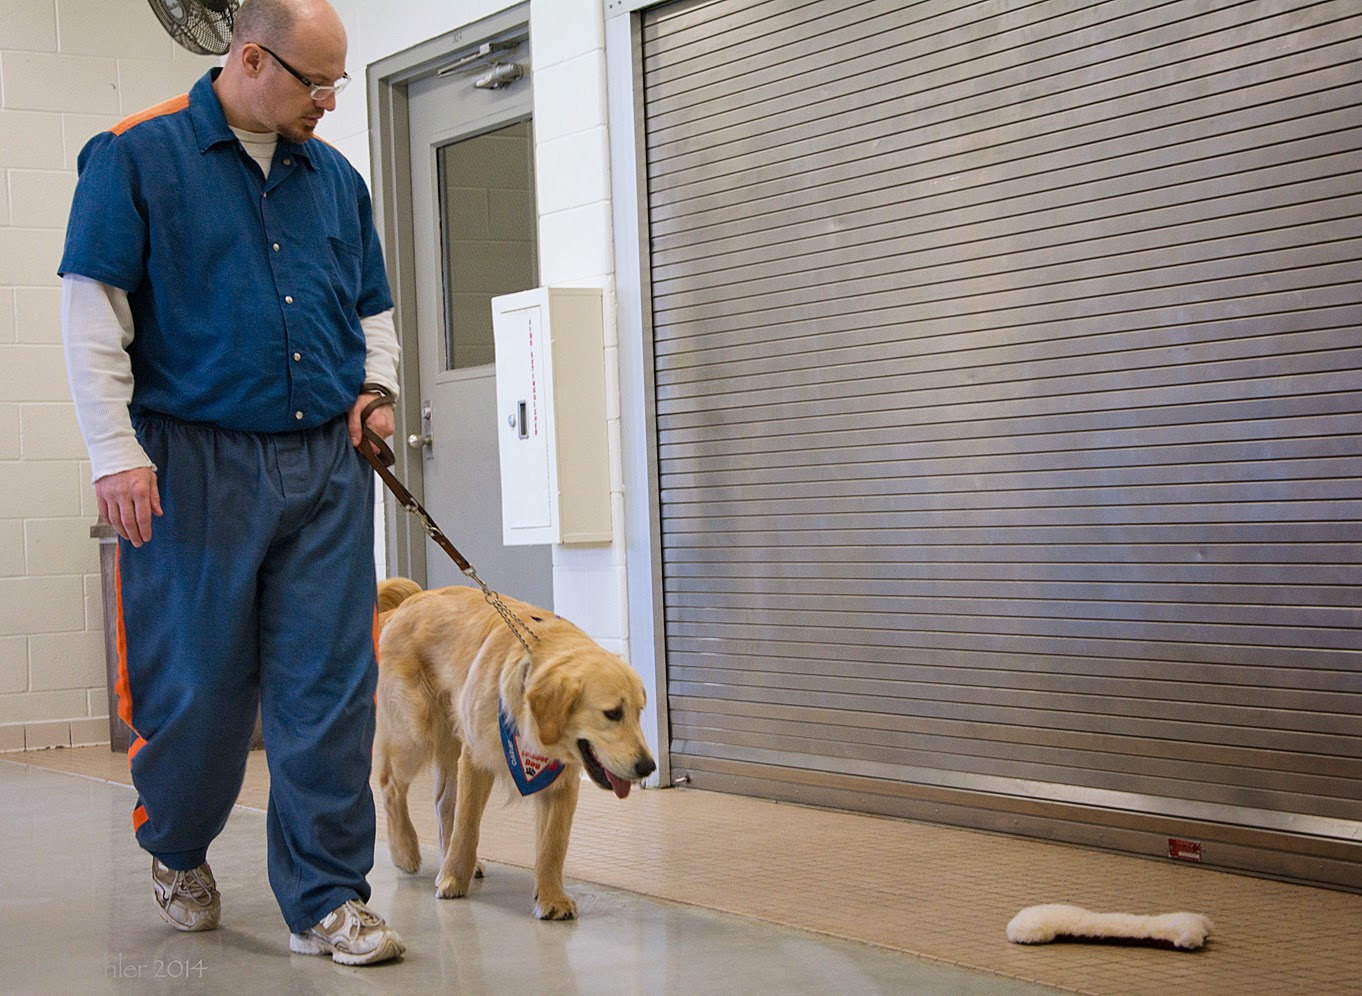 A different man, wearing the same prison uniform but with a long sleeve white t-shirt under the blue shirt is walking toward the camera from the left. He has a brown leash wrapped around his left hand, attached to a golden retriever that is wearing the blue Future Leader Dog bandana. The man is wearing glasses and is looking down at the dog, who is looing at the soft bone toy ahead of him on the right. The leash is taut.